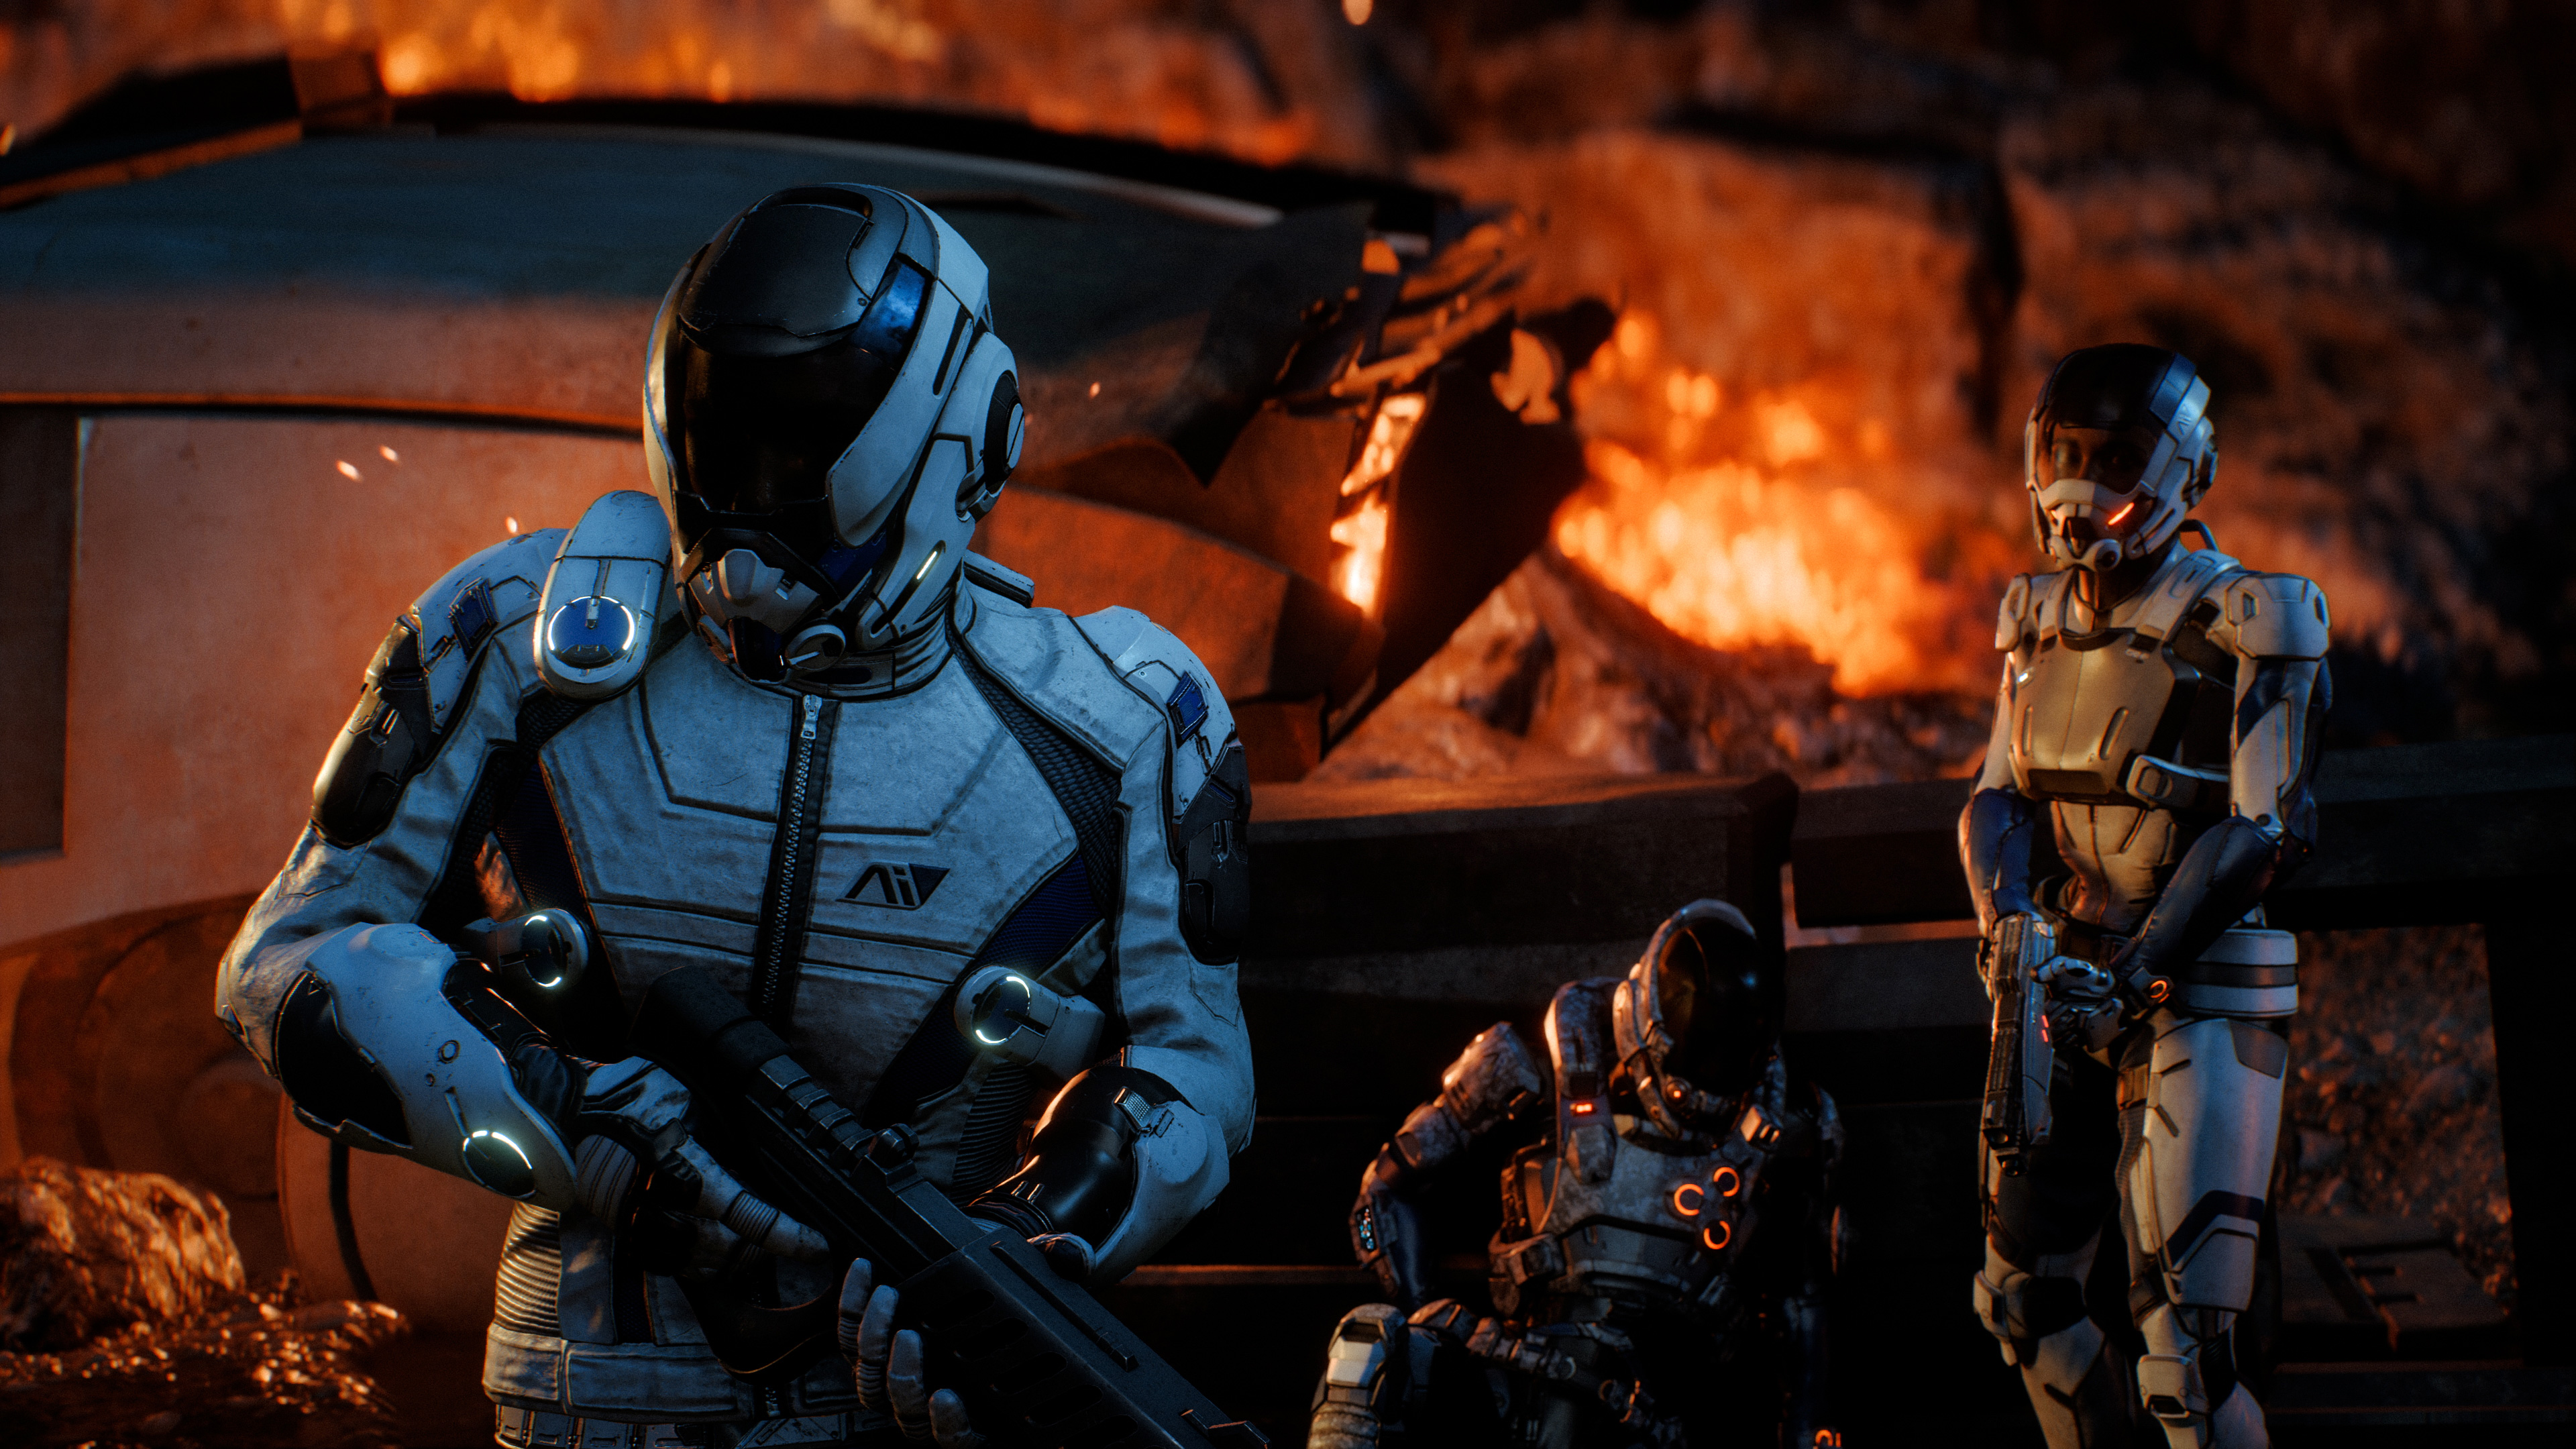 Mass Effect Andromeda 2017 4k Hd Games 4k Wallpapers Images